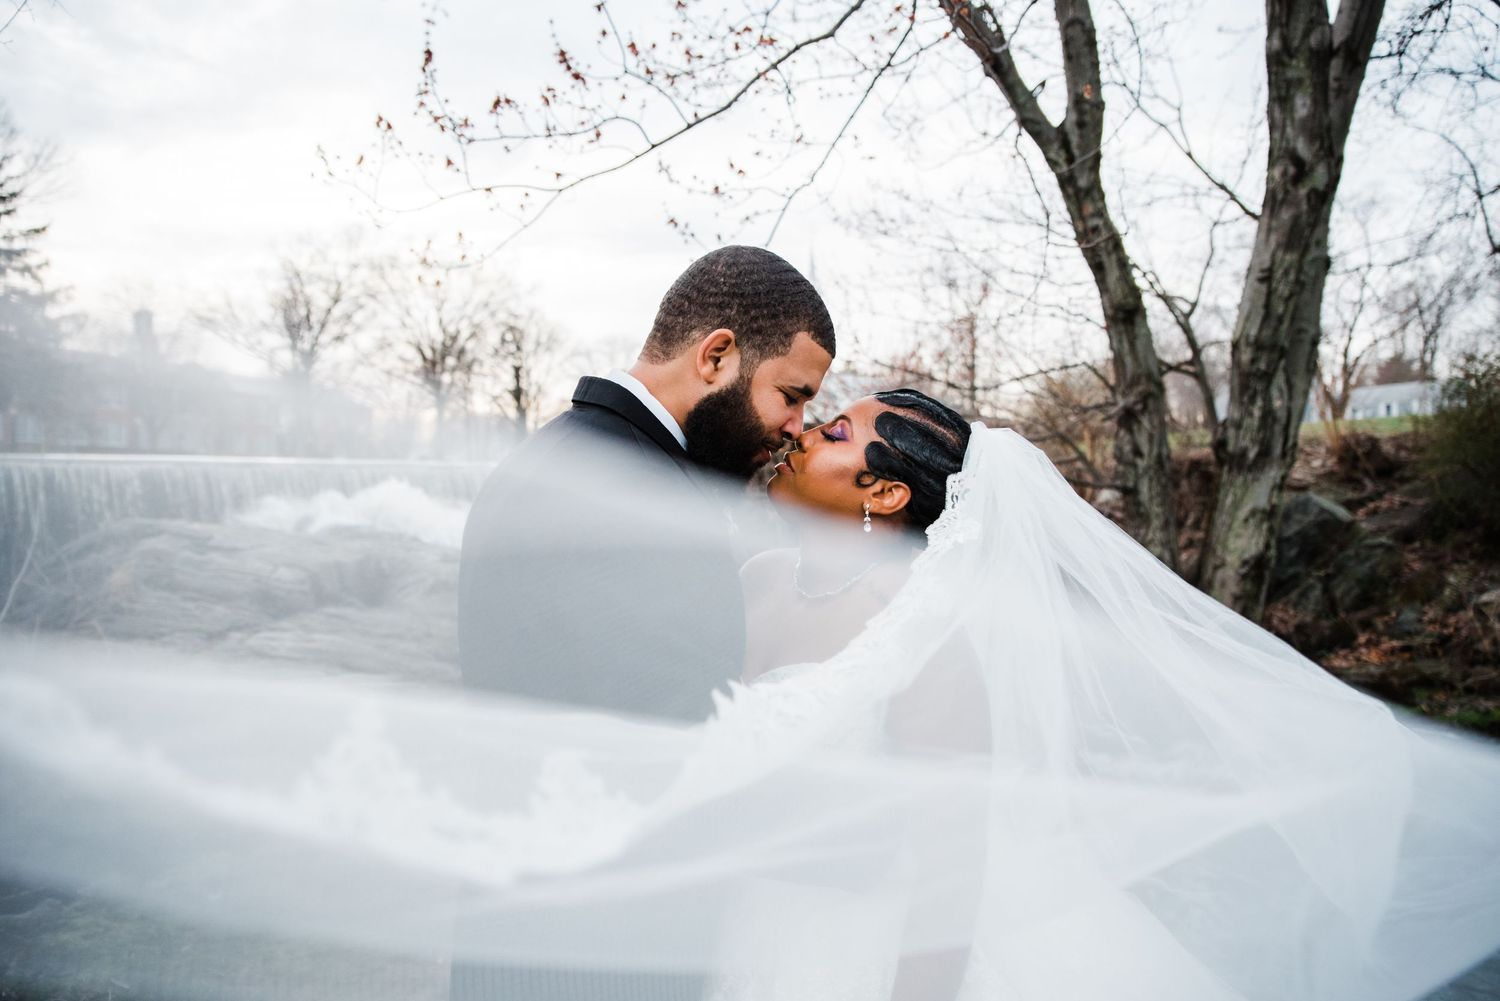 wedding veil bride and groom kiss